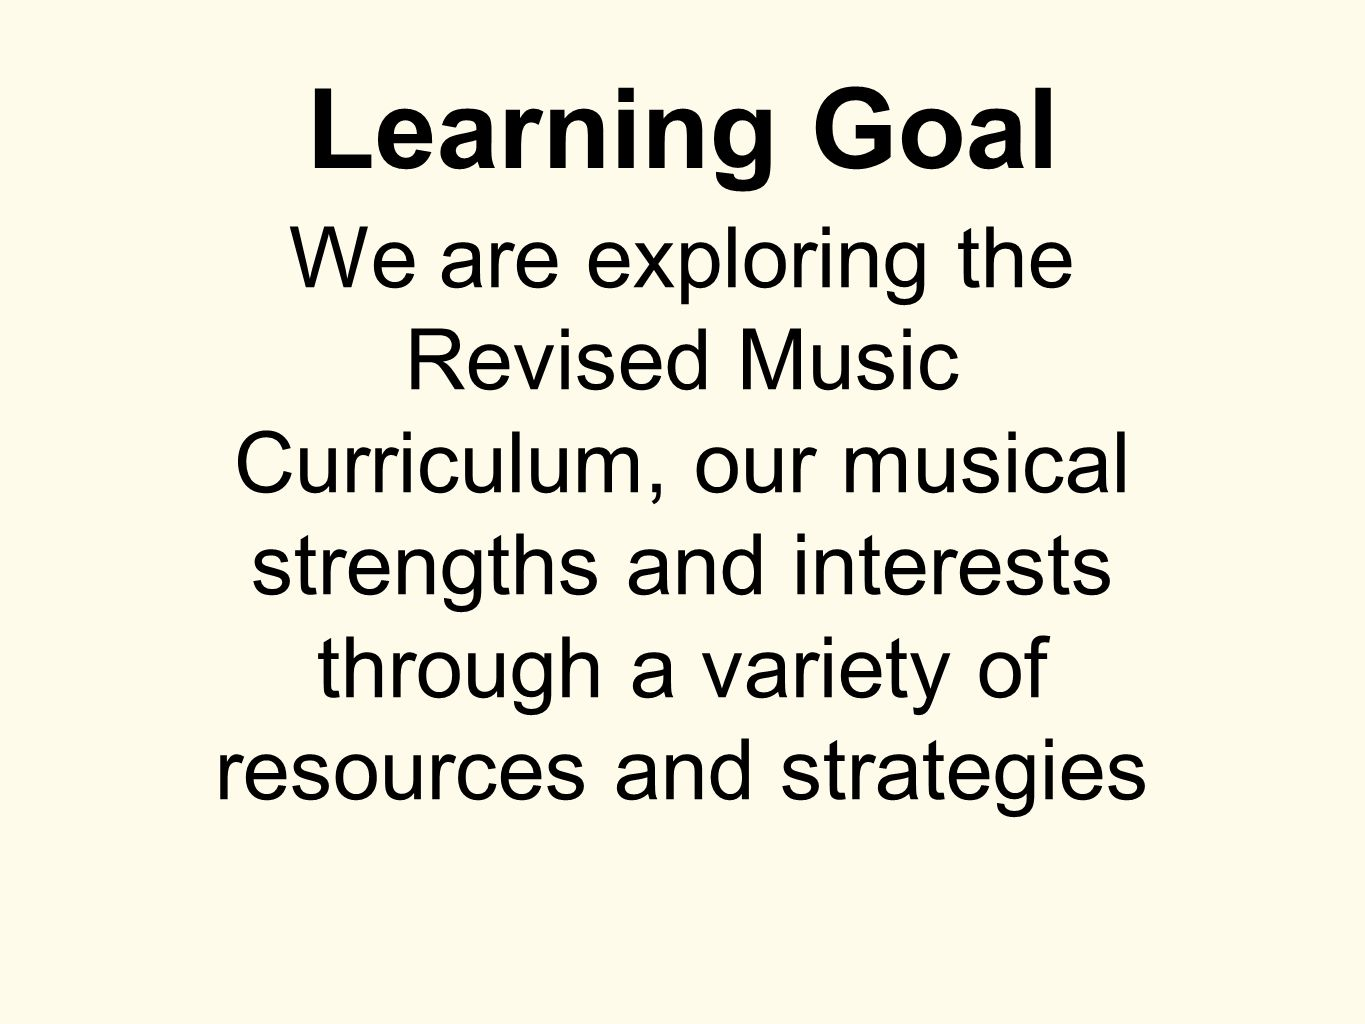 music session part ii th active participation 3 learning goal we are exploring the revised music curriculum our musical strengths and interests through a variety of resources and strategies